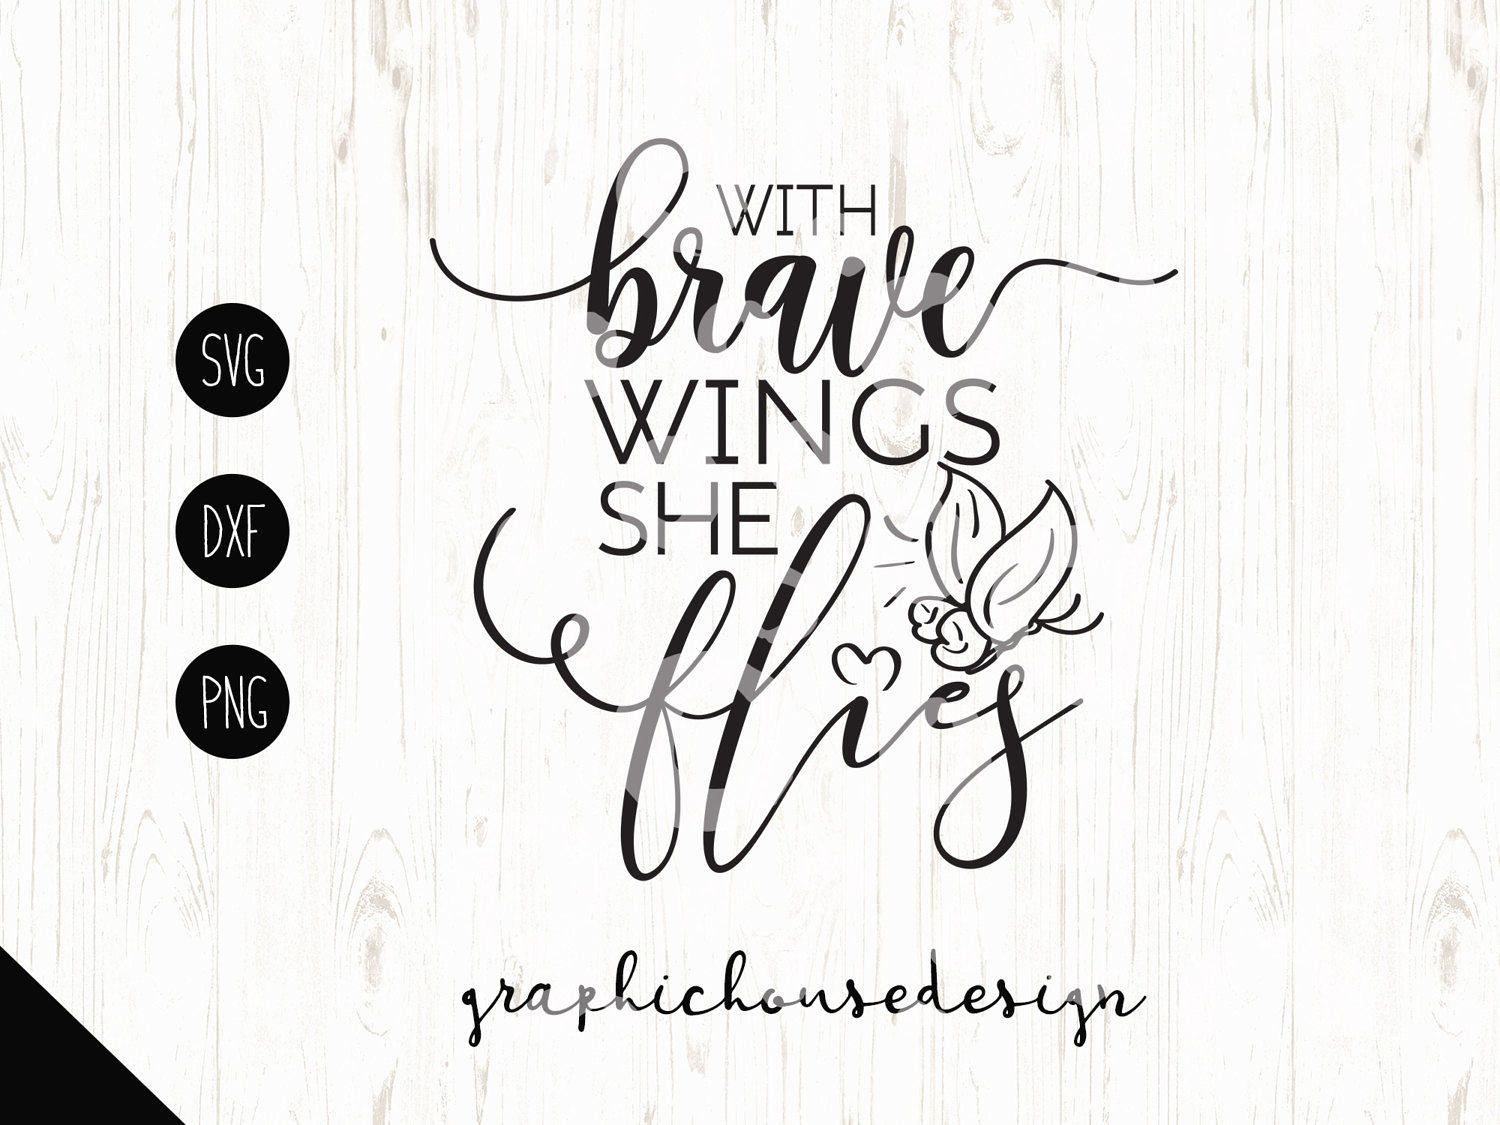 T Shirt Design Line Art : Motivation svg with brave wings she flies girls butterfly